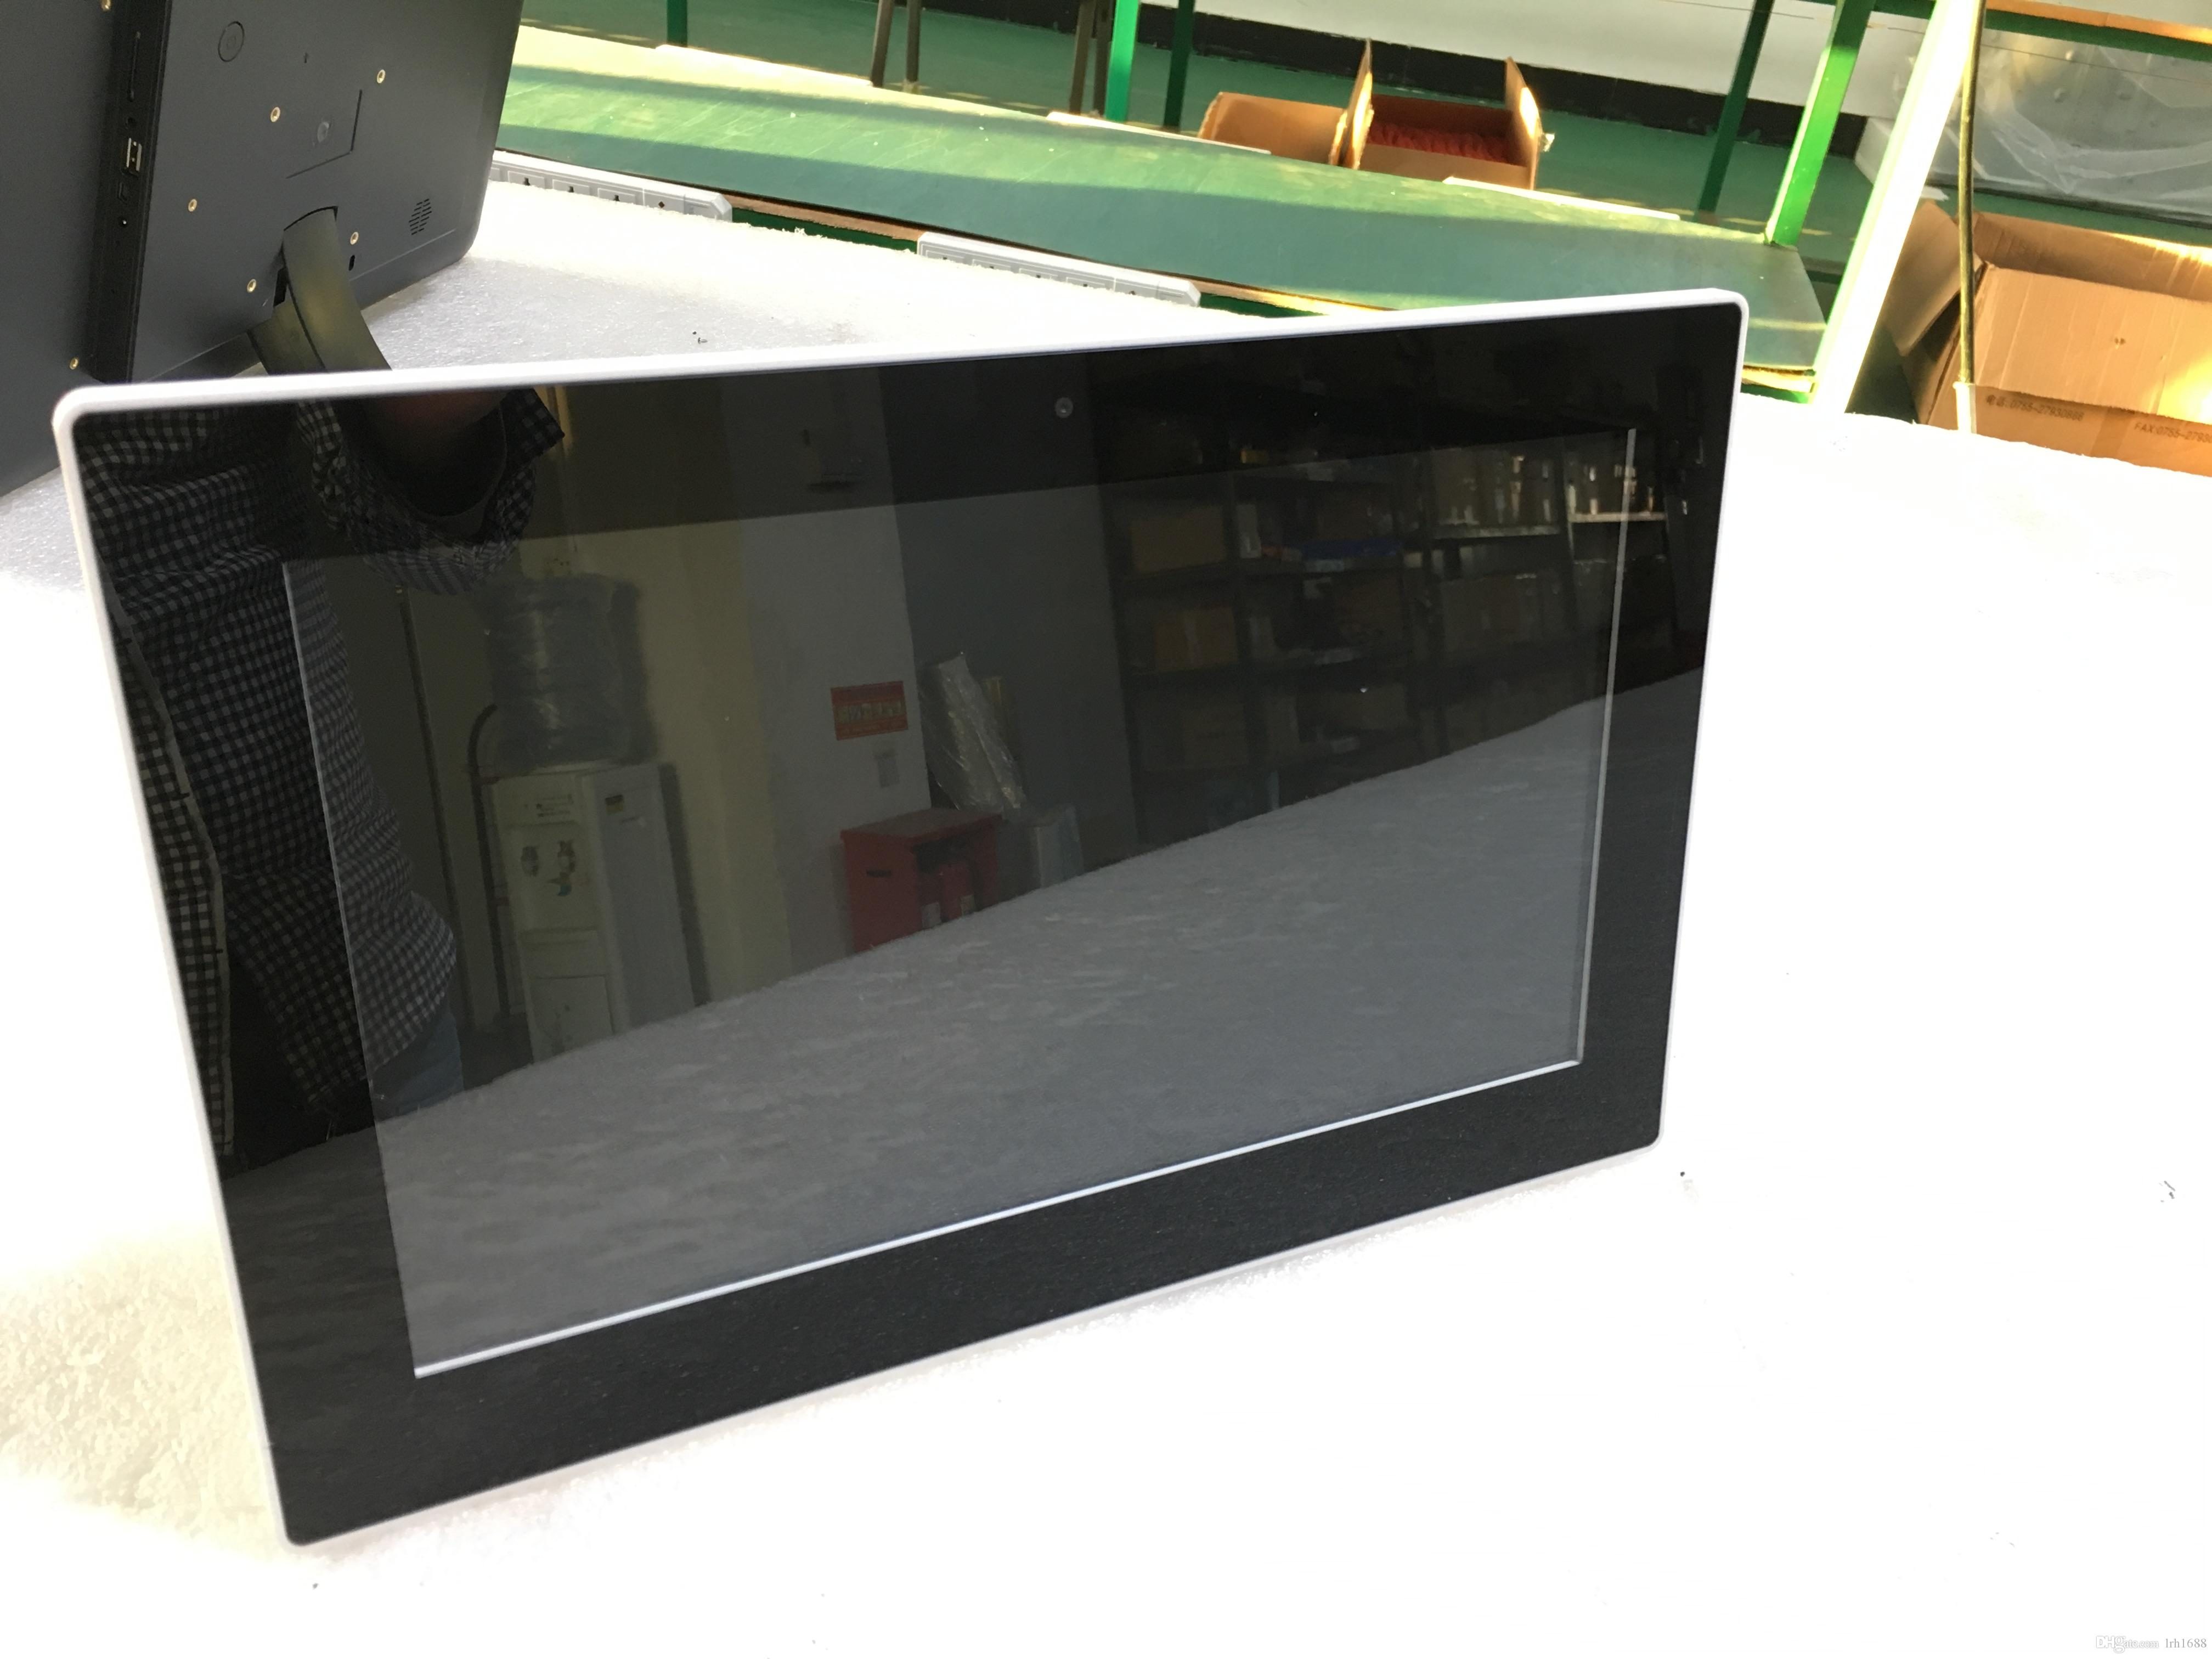 24inch 23.6inch capacity touch panel all in one Android tablet PC 3G/4G network support to integrate